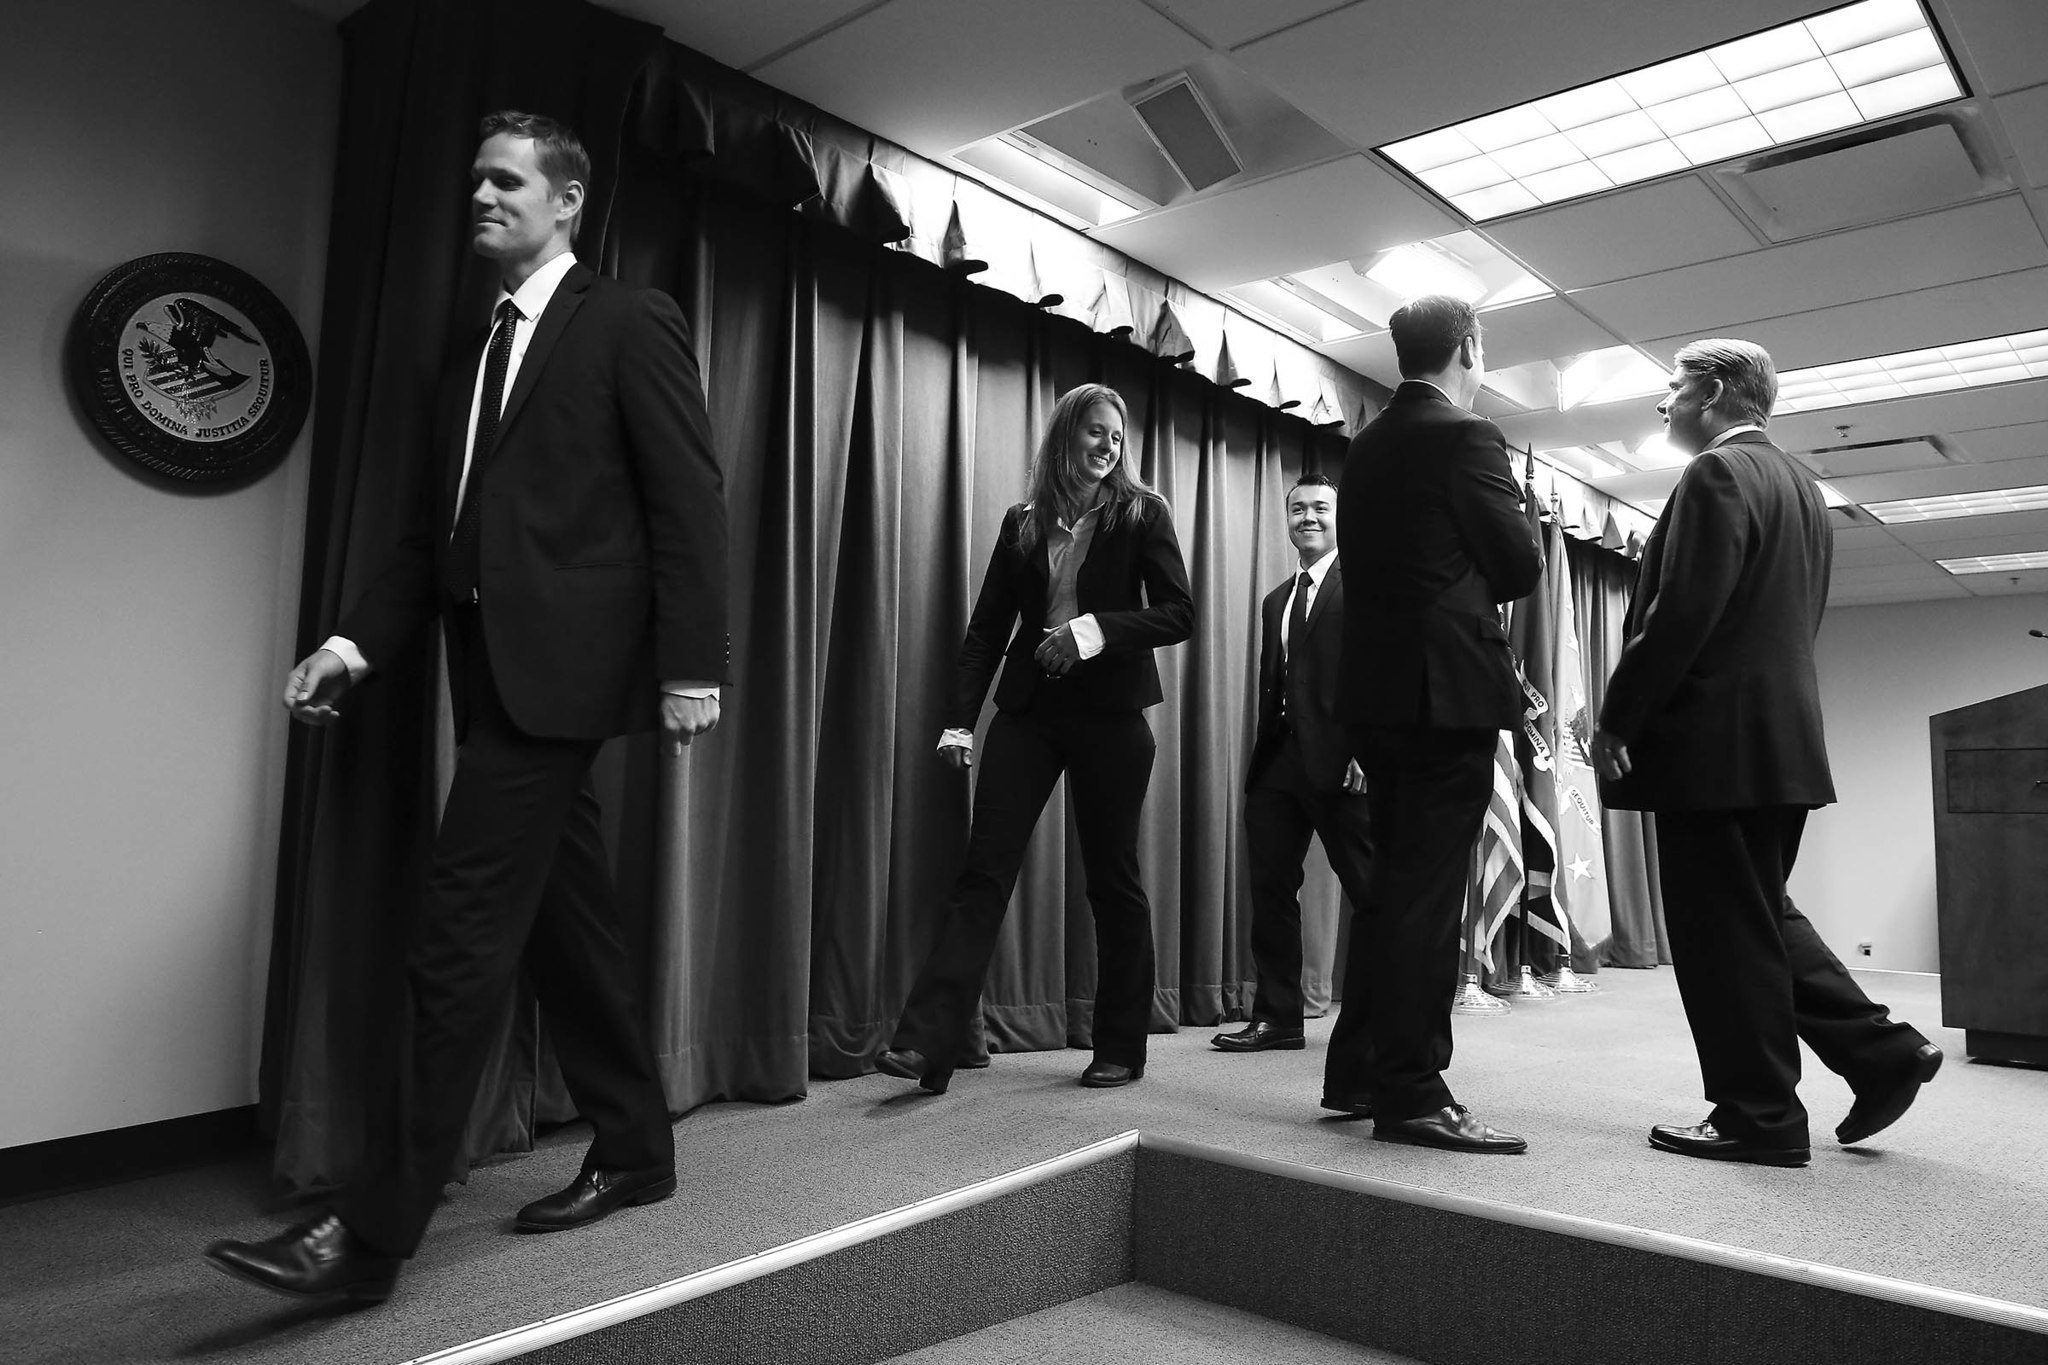 FBI agent Jason Dalton leaves the stage after attending a May 2015 press conference at the downtown Federal Building.